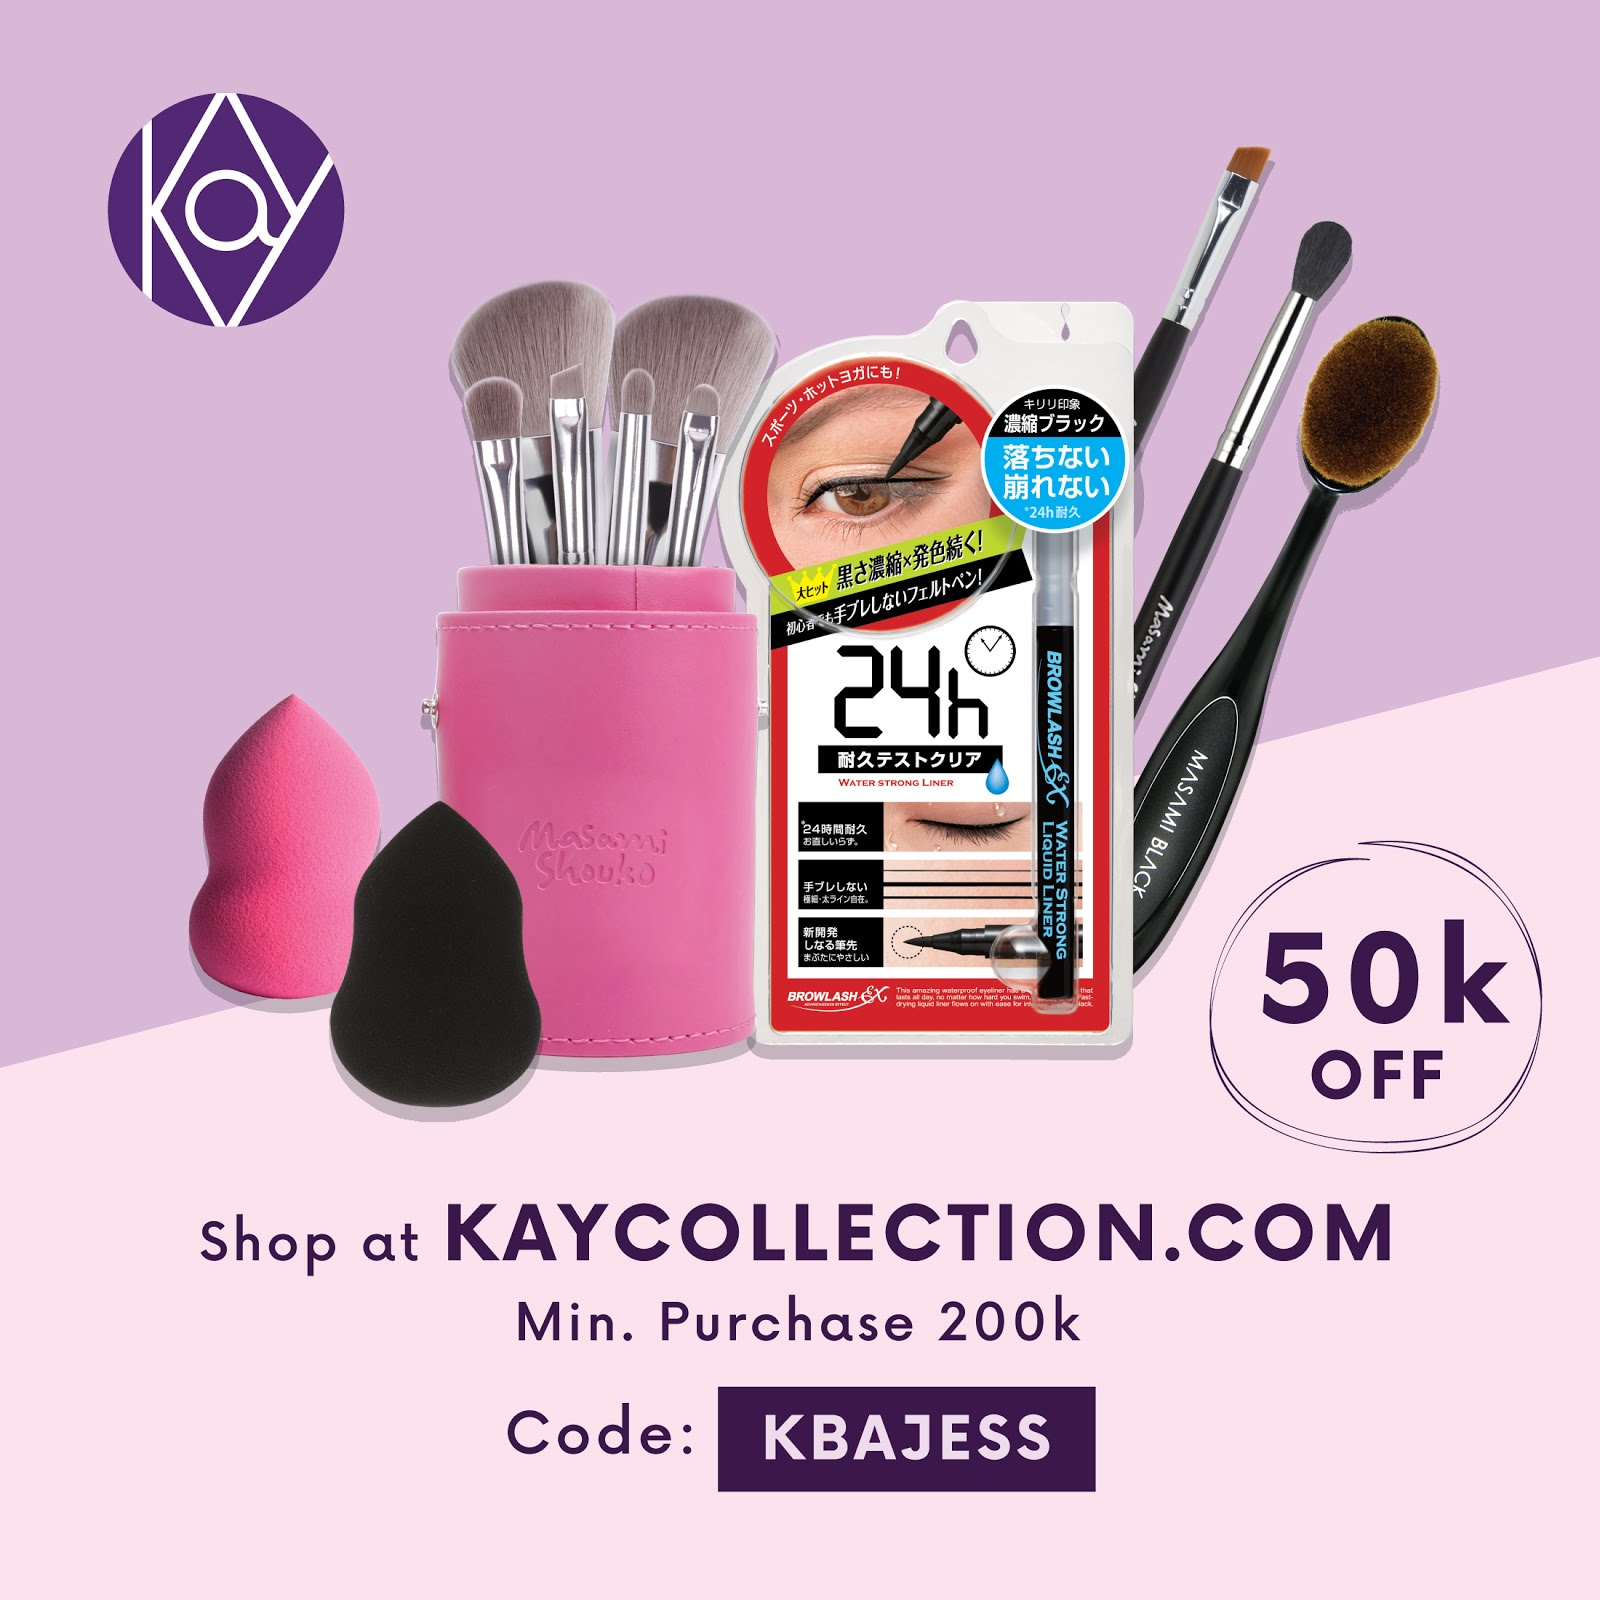 KayCollection.com Voucher